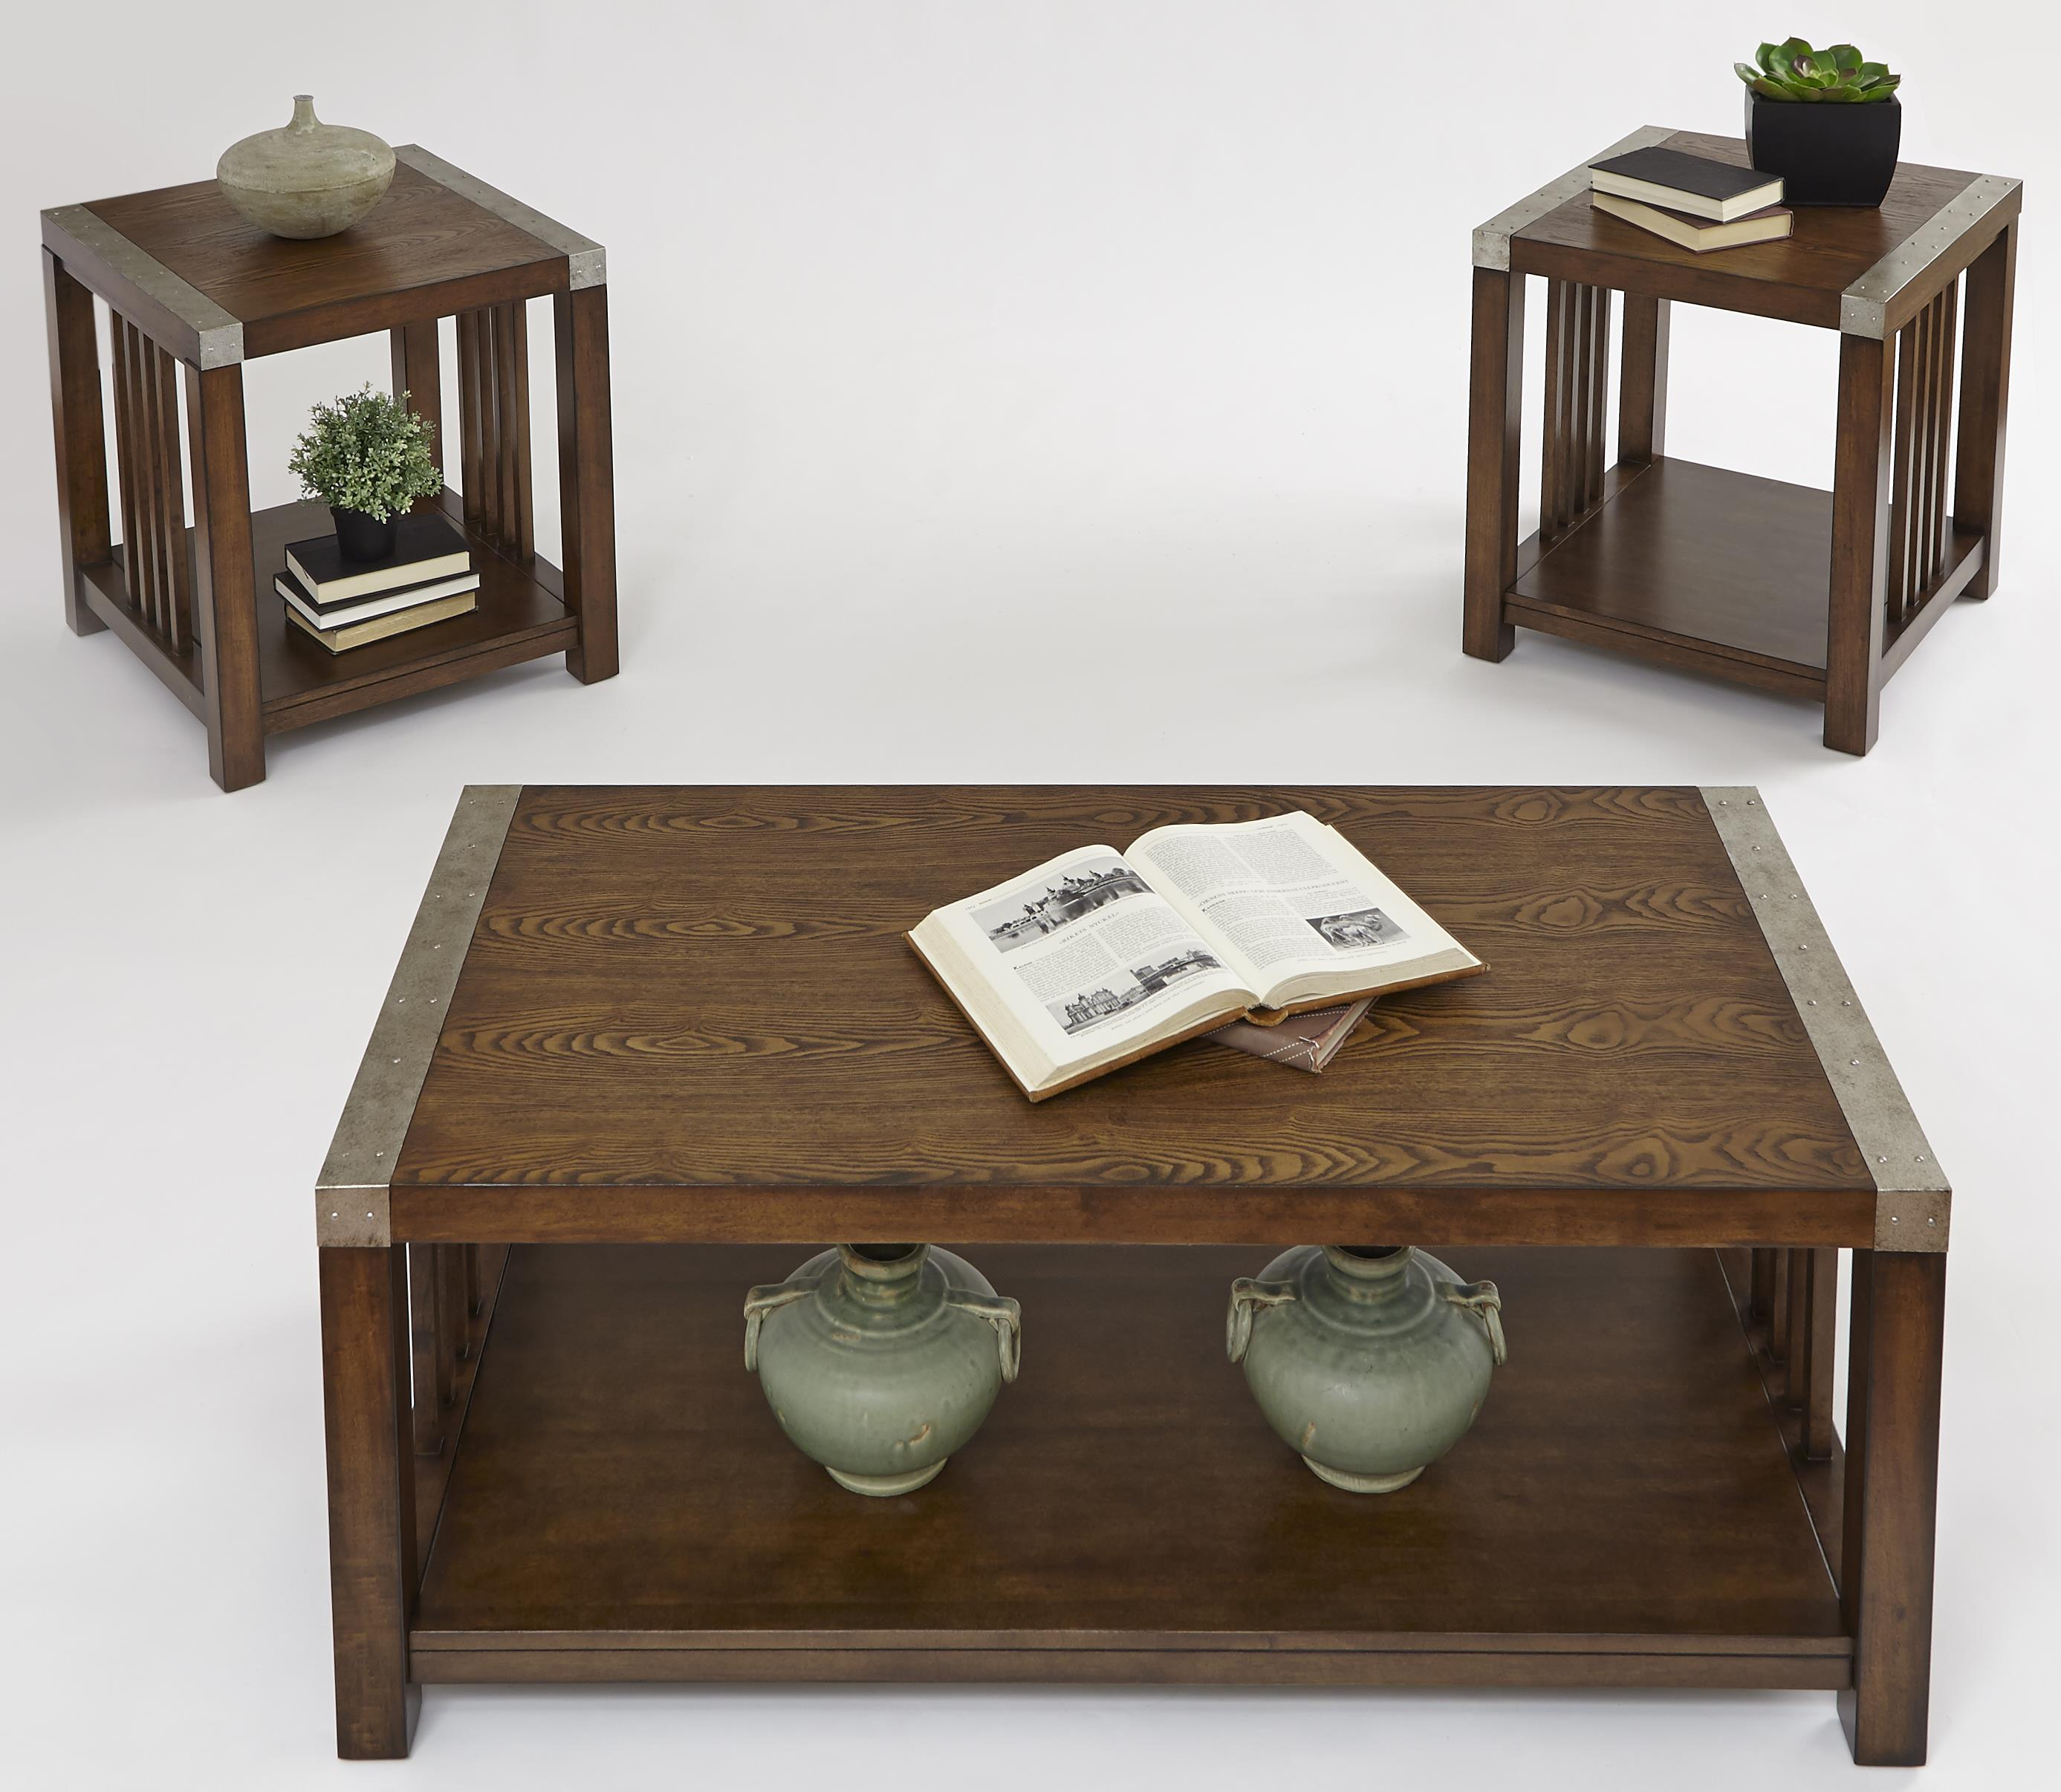 Progressive Furniture Mason Hills 3 Pack Set w/ Cocktail Table & 2 End Tables - Item Number: P266-95